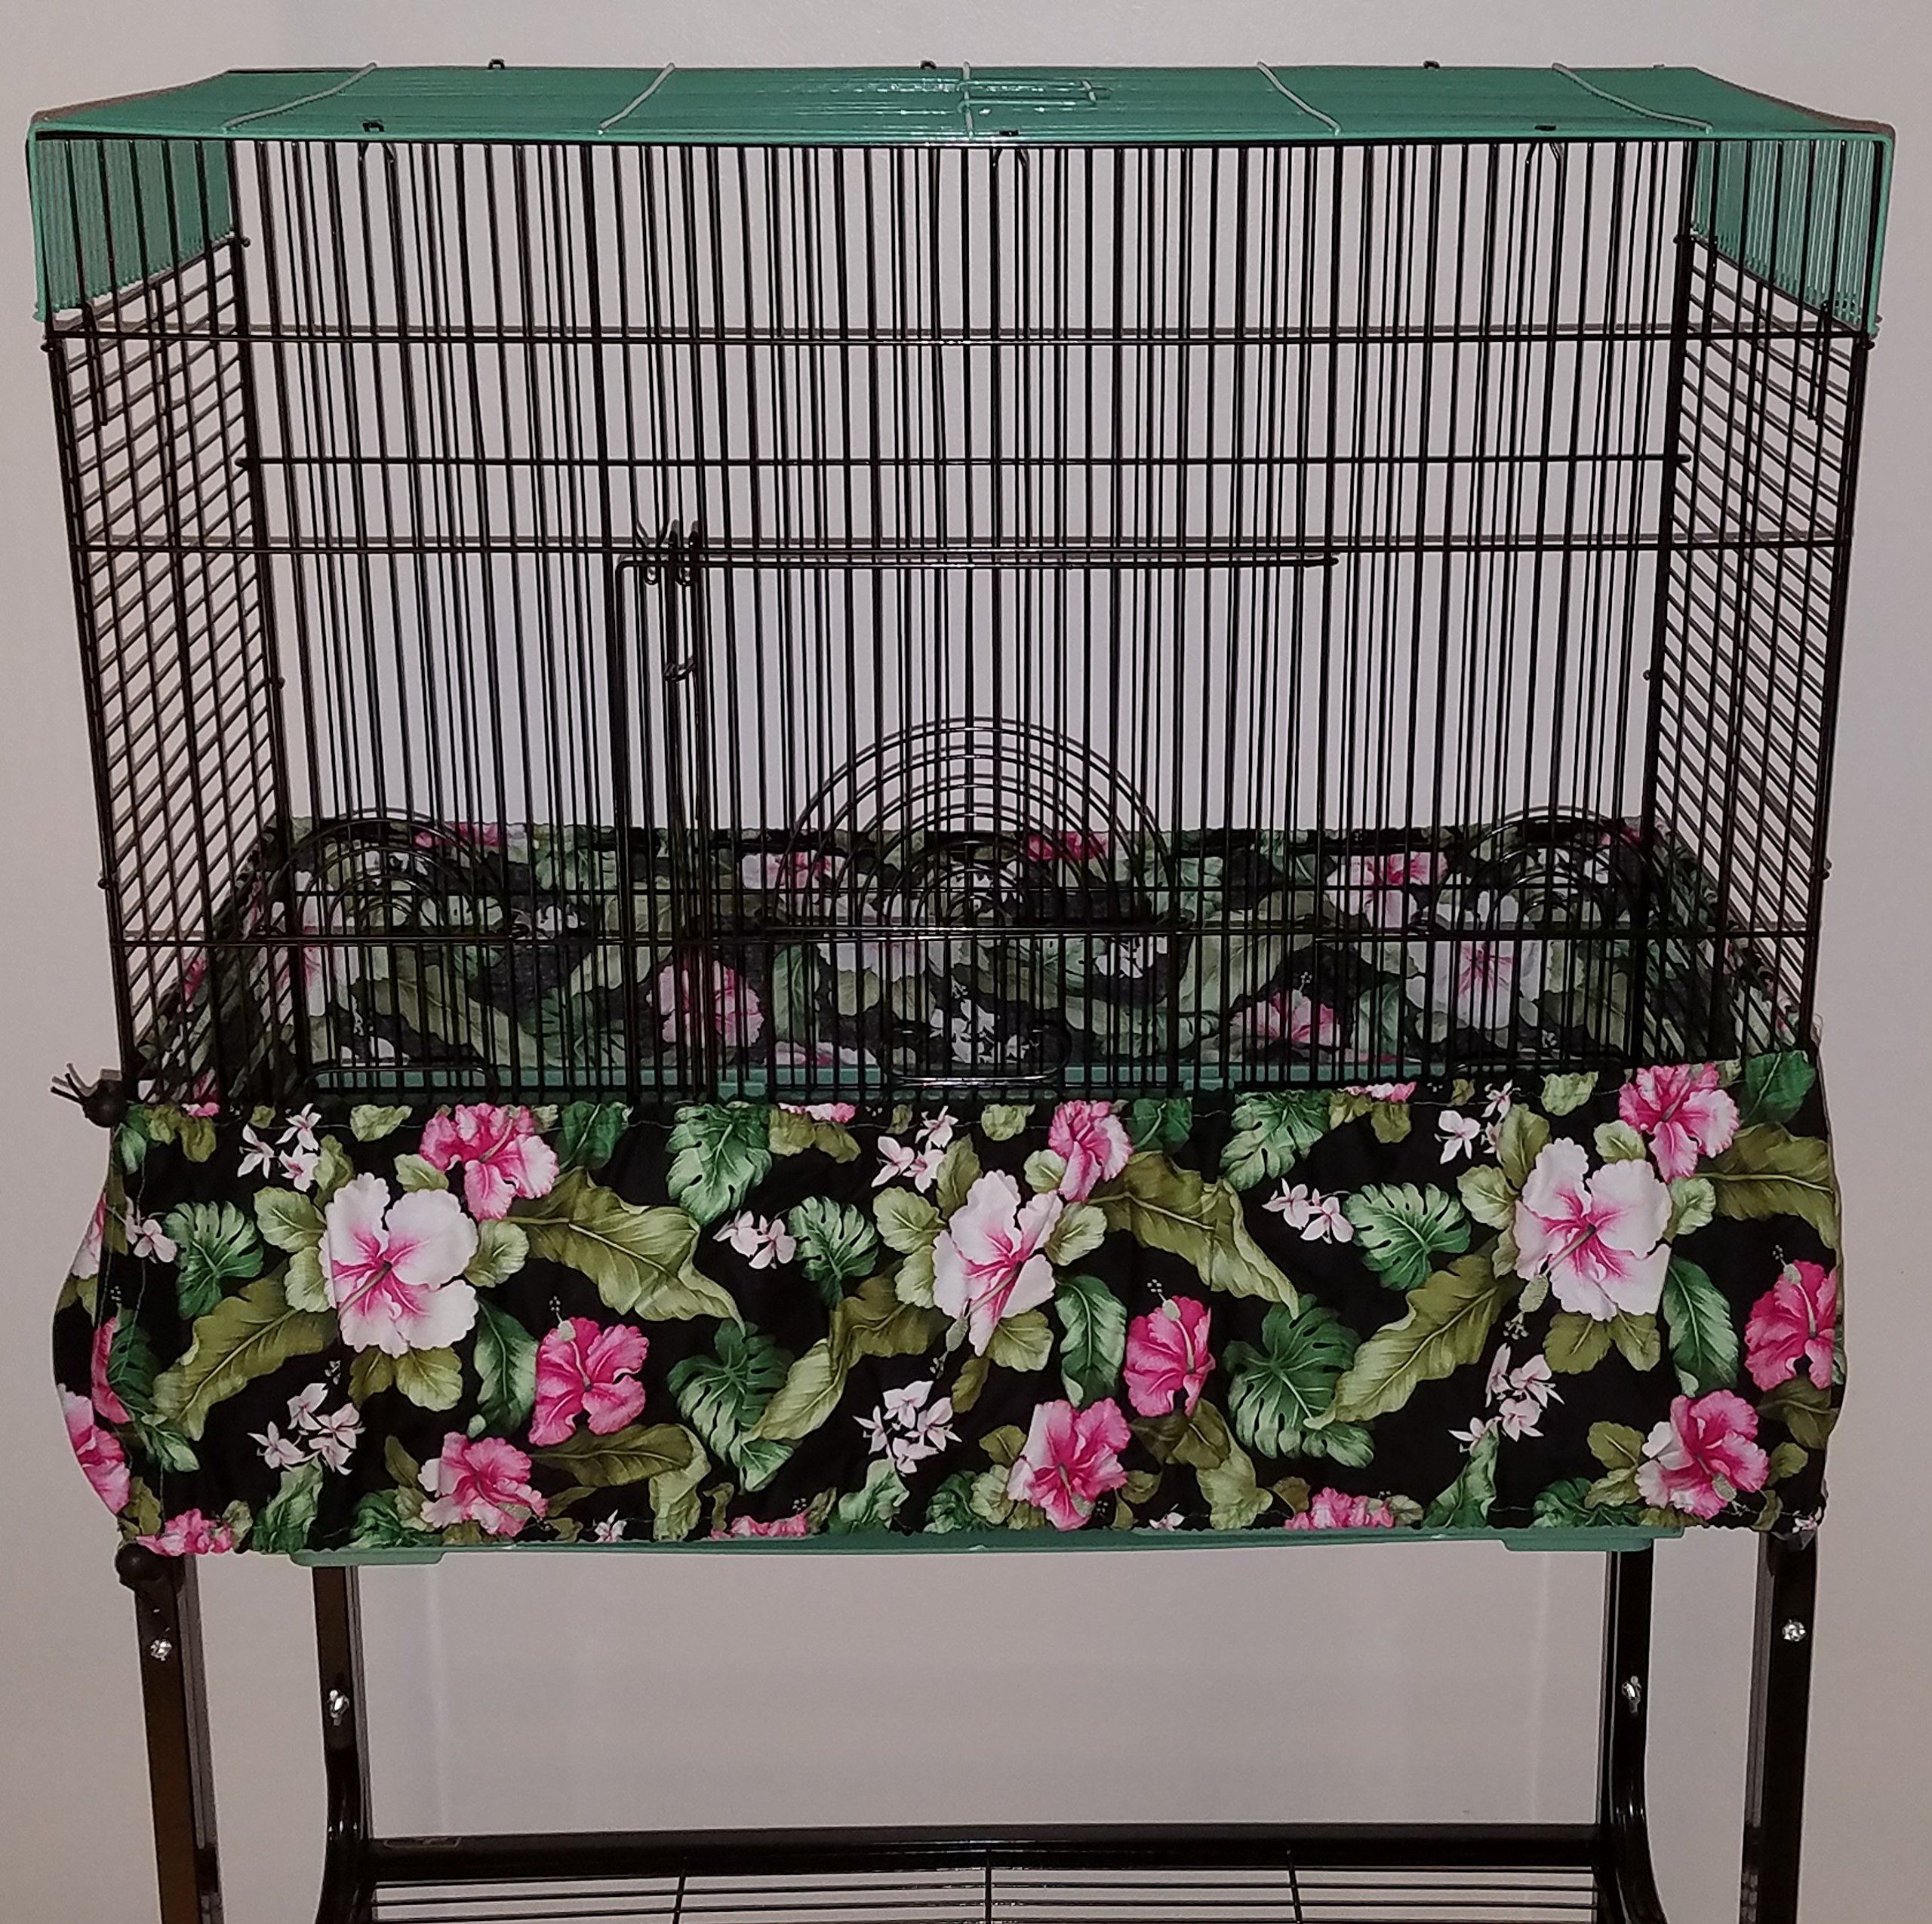 Penn Seed Seed Guard and Catcher Bird Cage Skirt - Fuchsia Hibiscus, Small (38''-76'' Cage Circumference) by Penn Seed